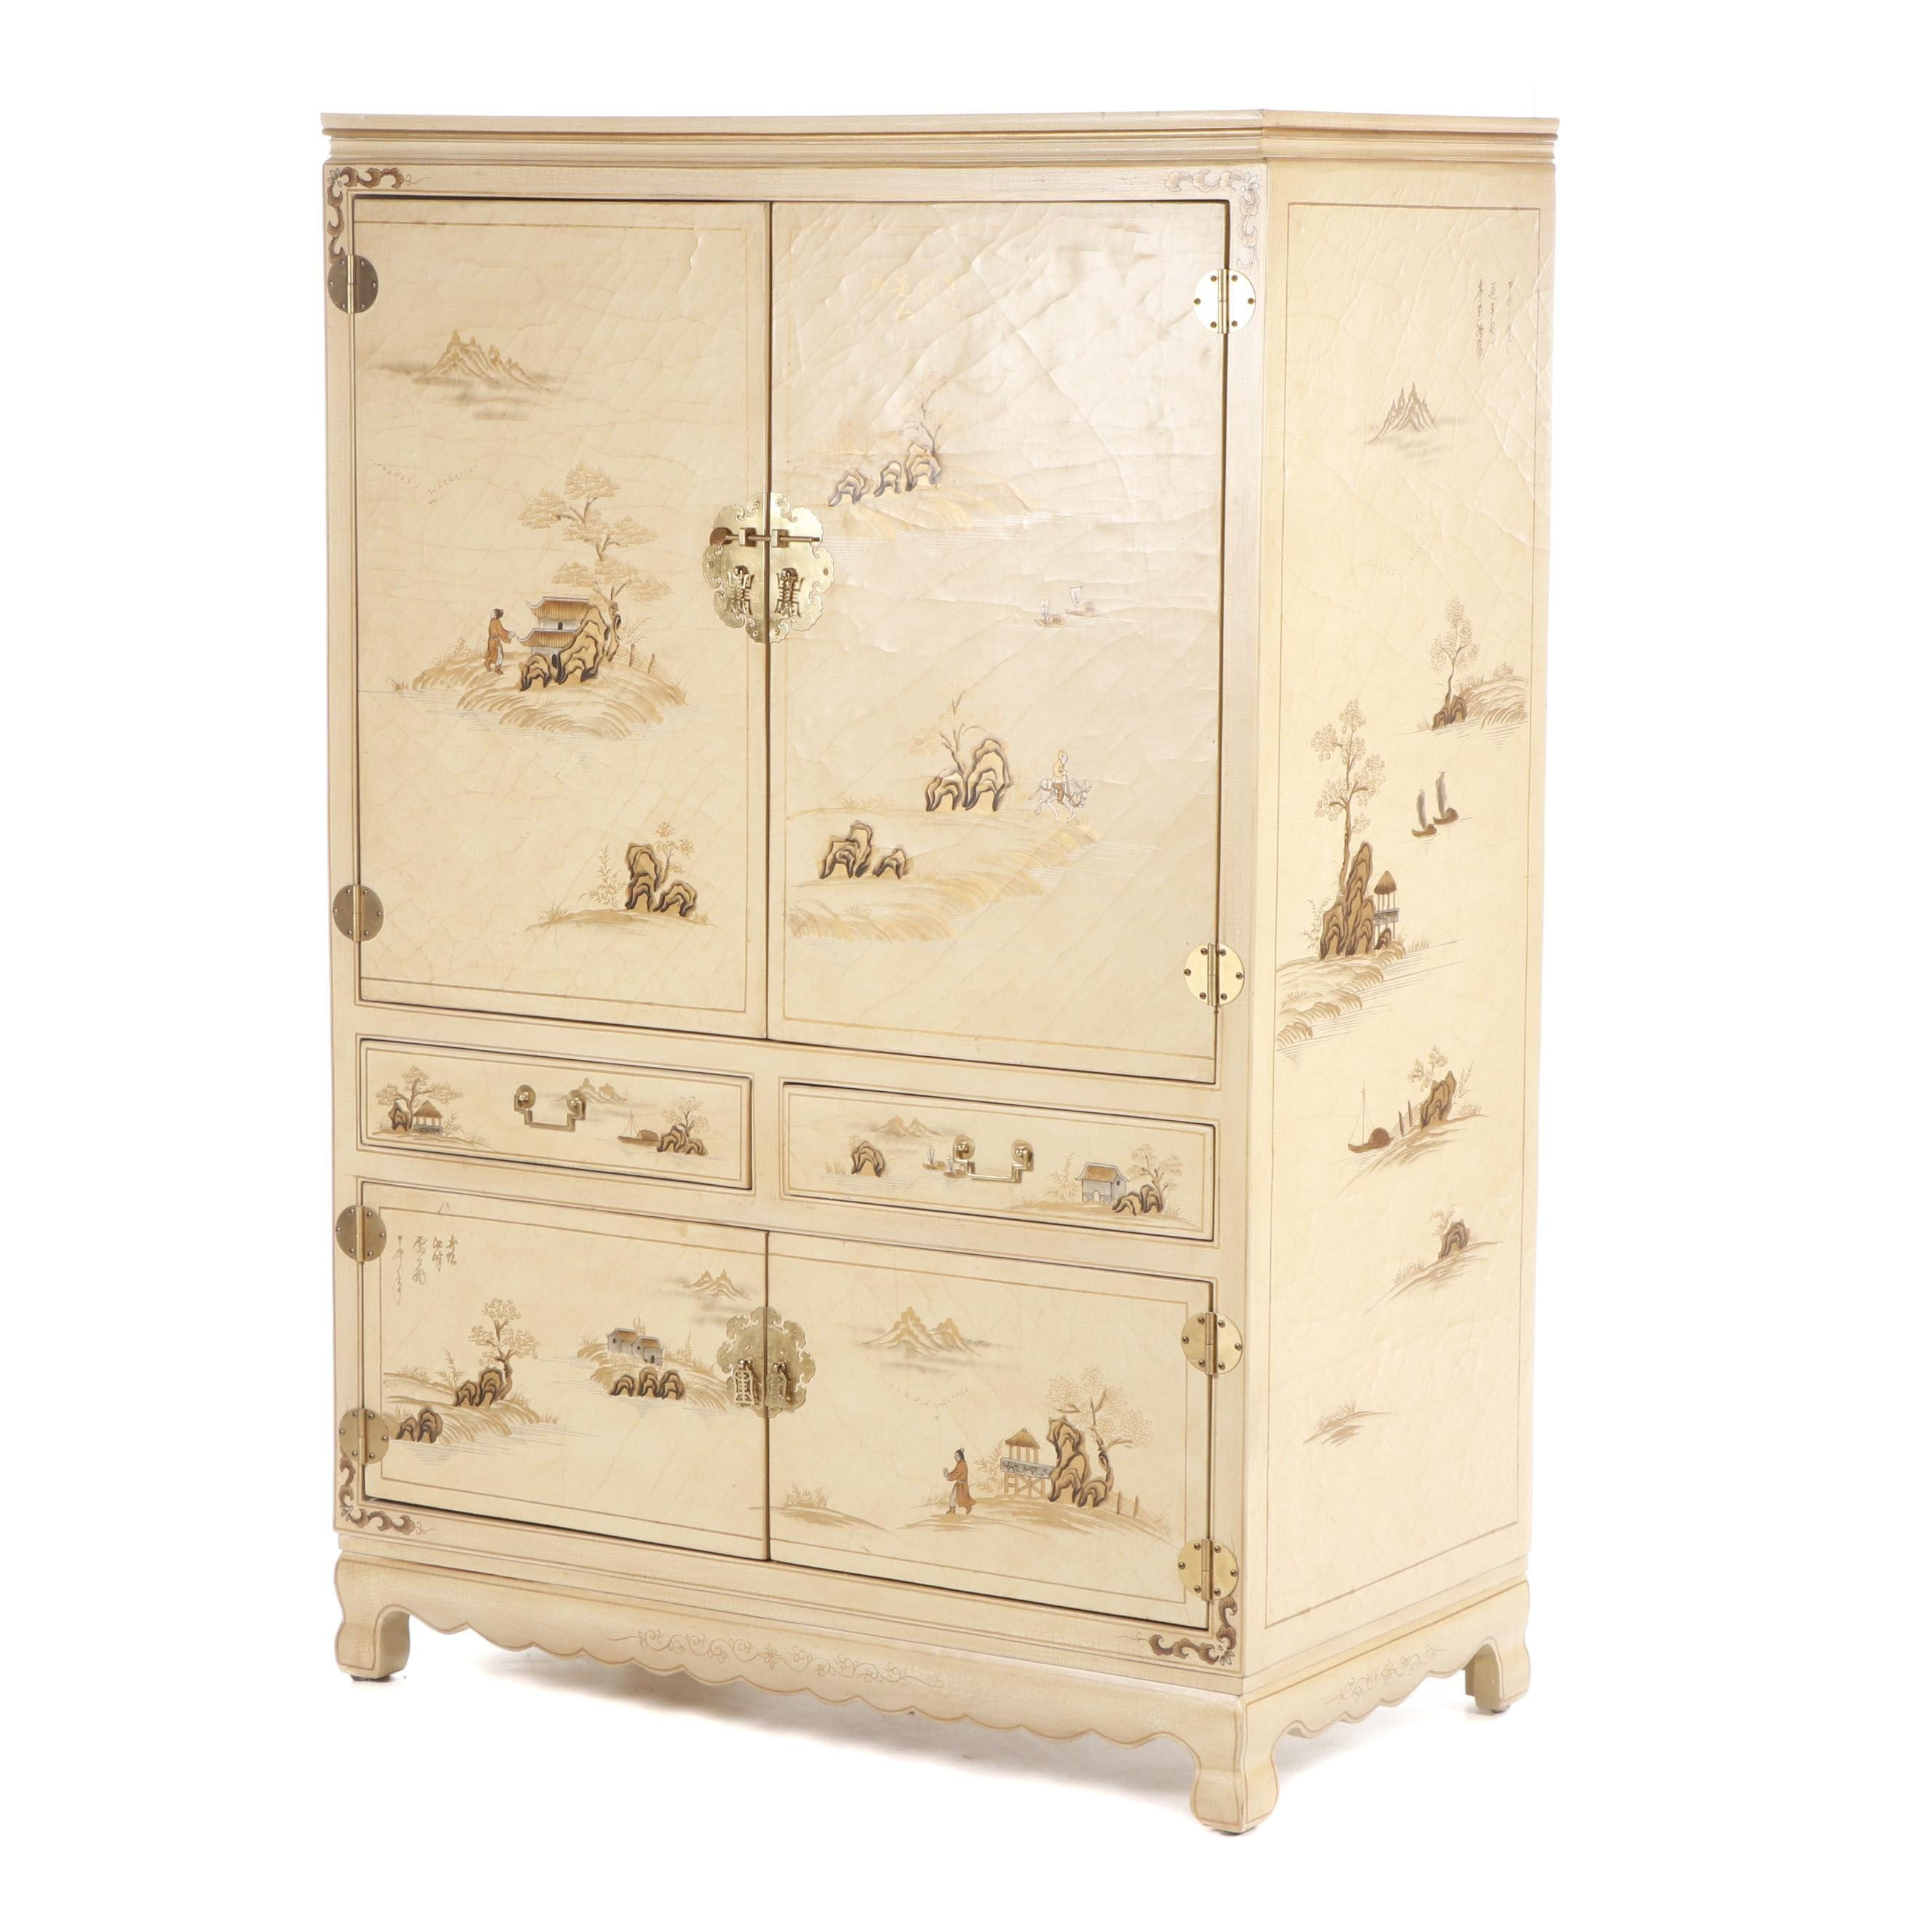 Contemporary Chinese Style Paint-Decorated Wooden Media Cabinet